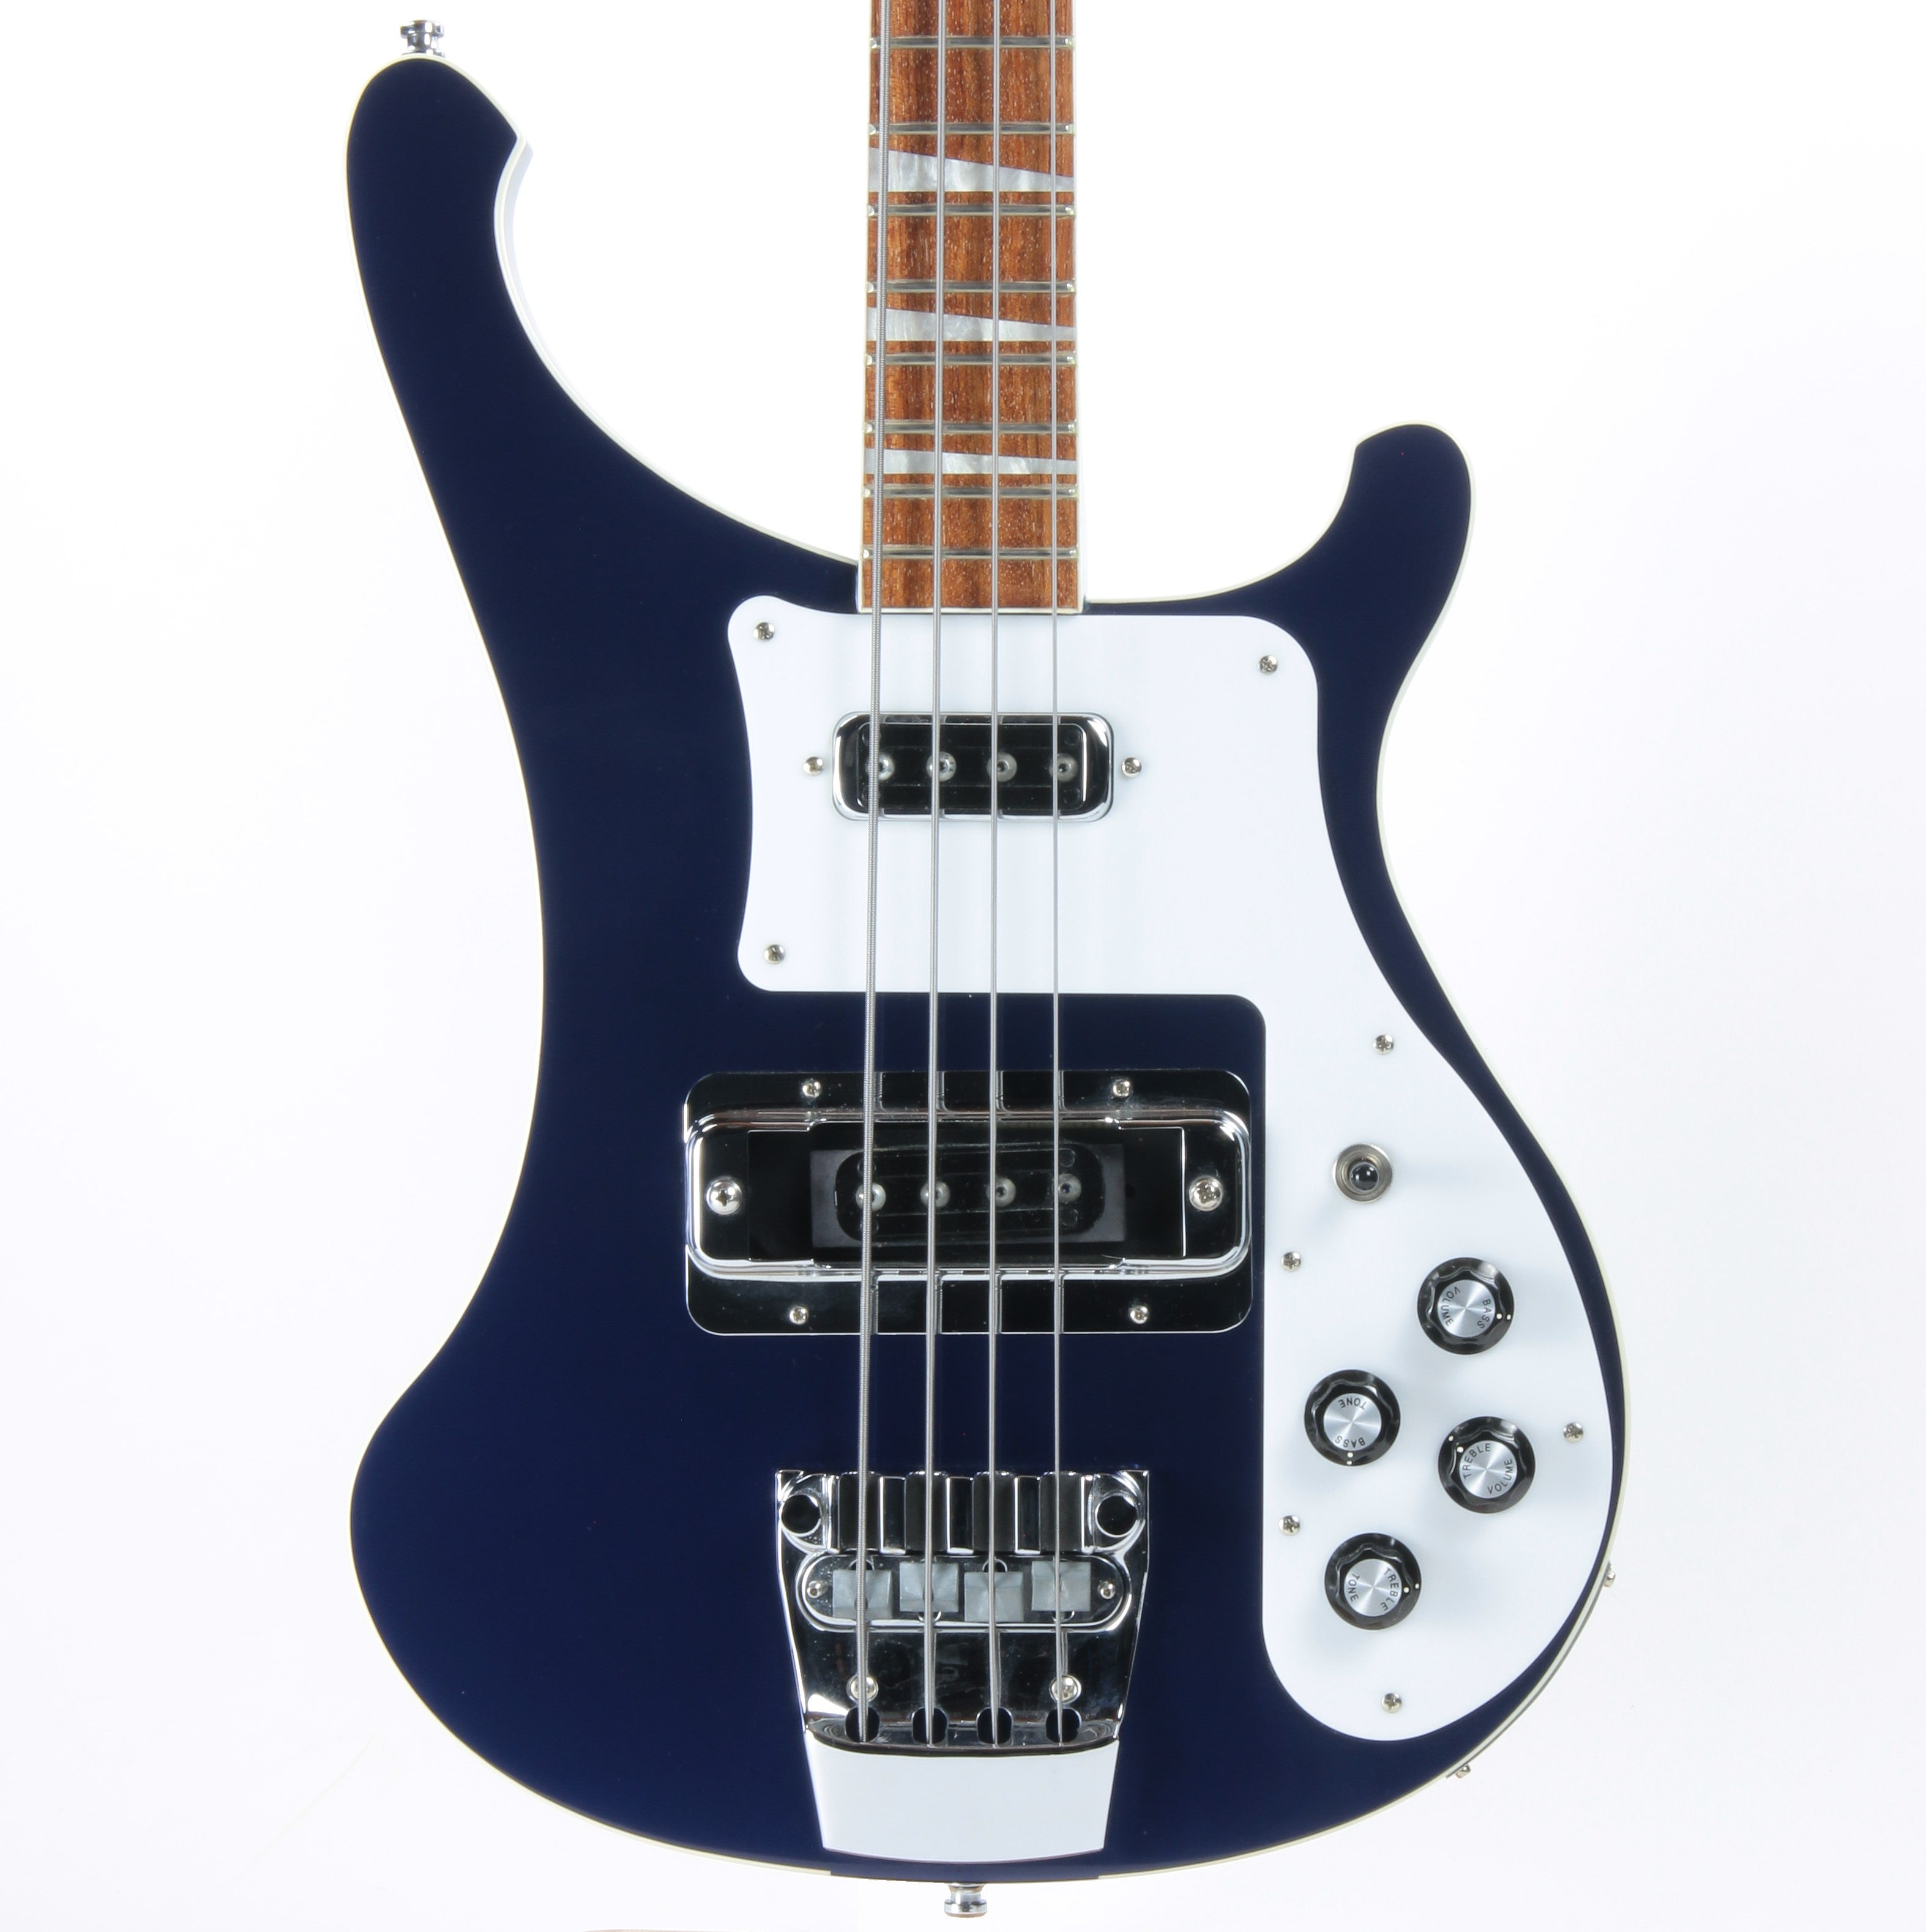 2011 Rickenbacker 4003 Midnight Blue MID - Triangle Inlays, Discontinued Color, w/ Original Case